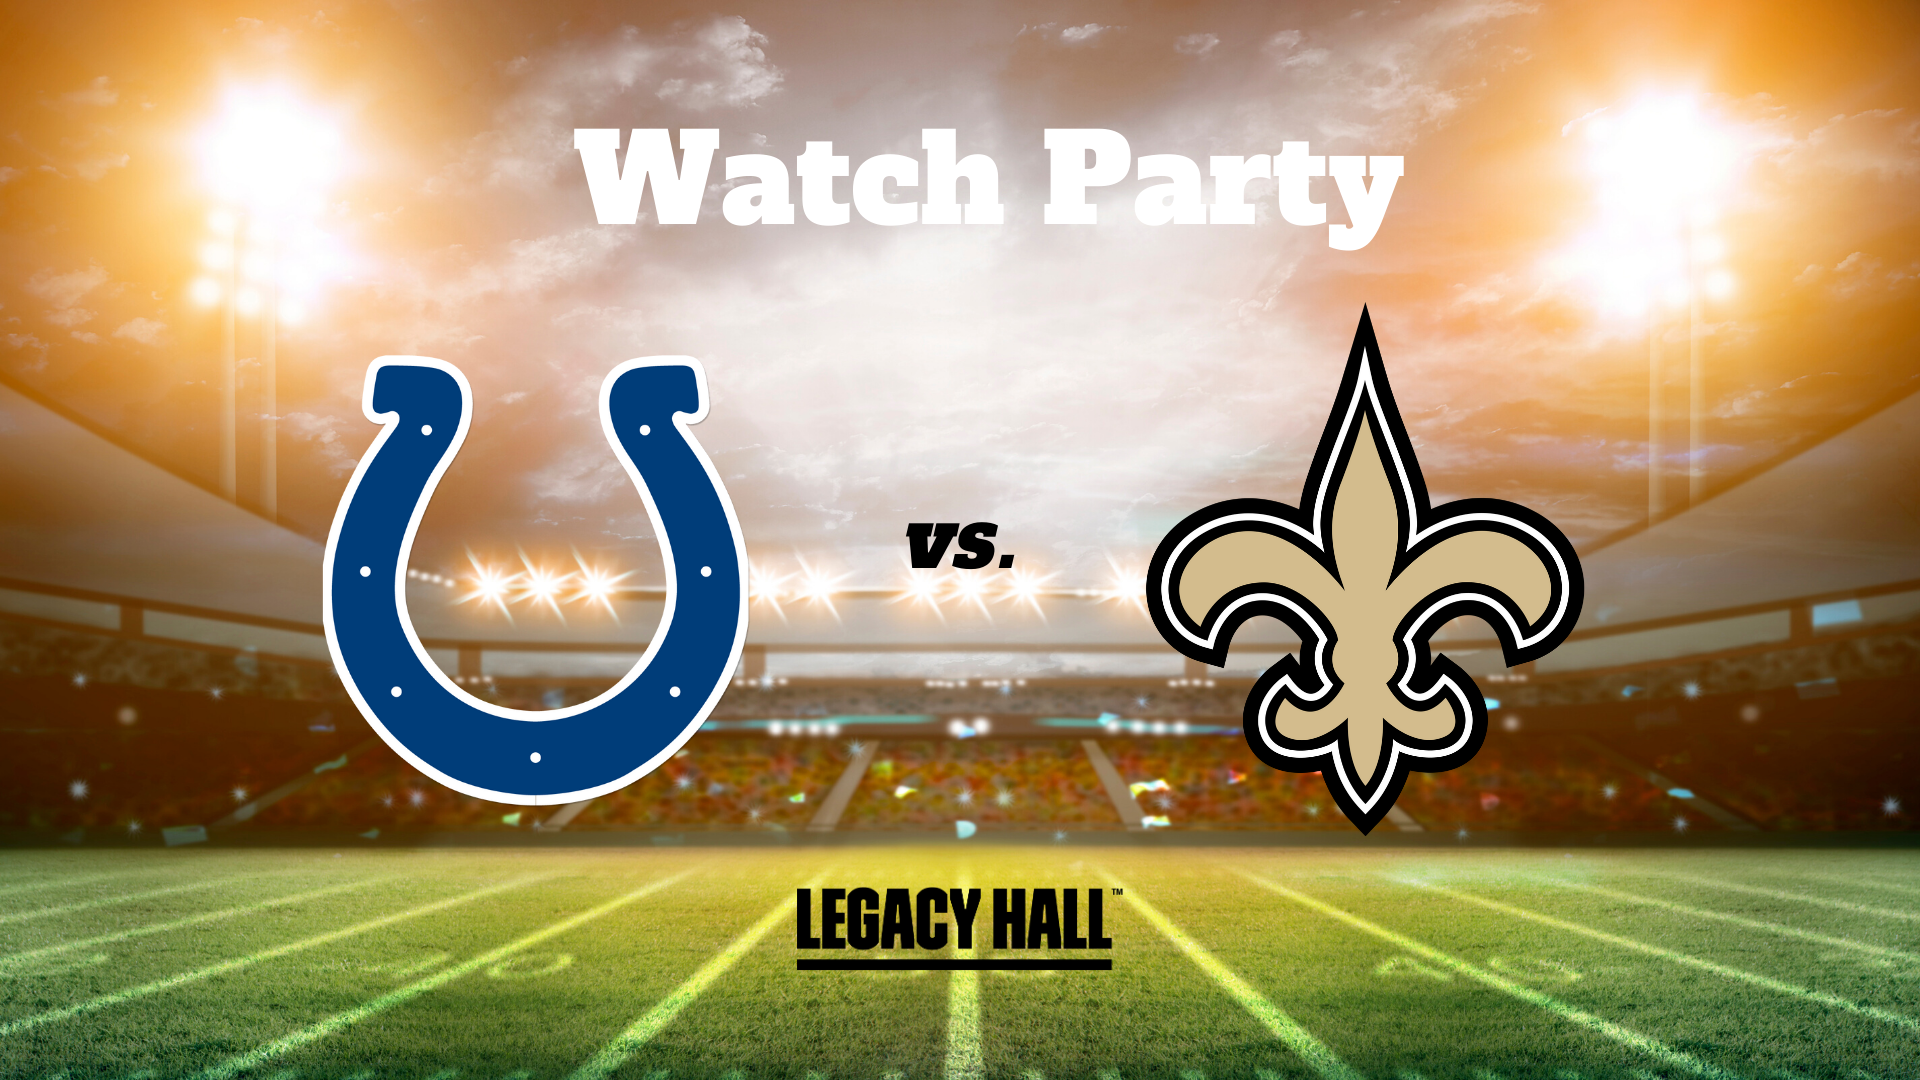 Colts vs. Saints Watch Party